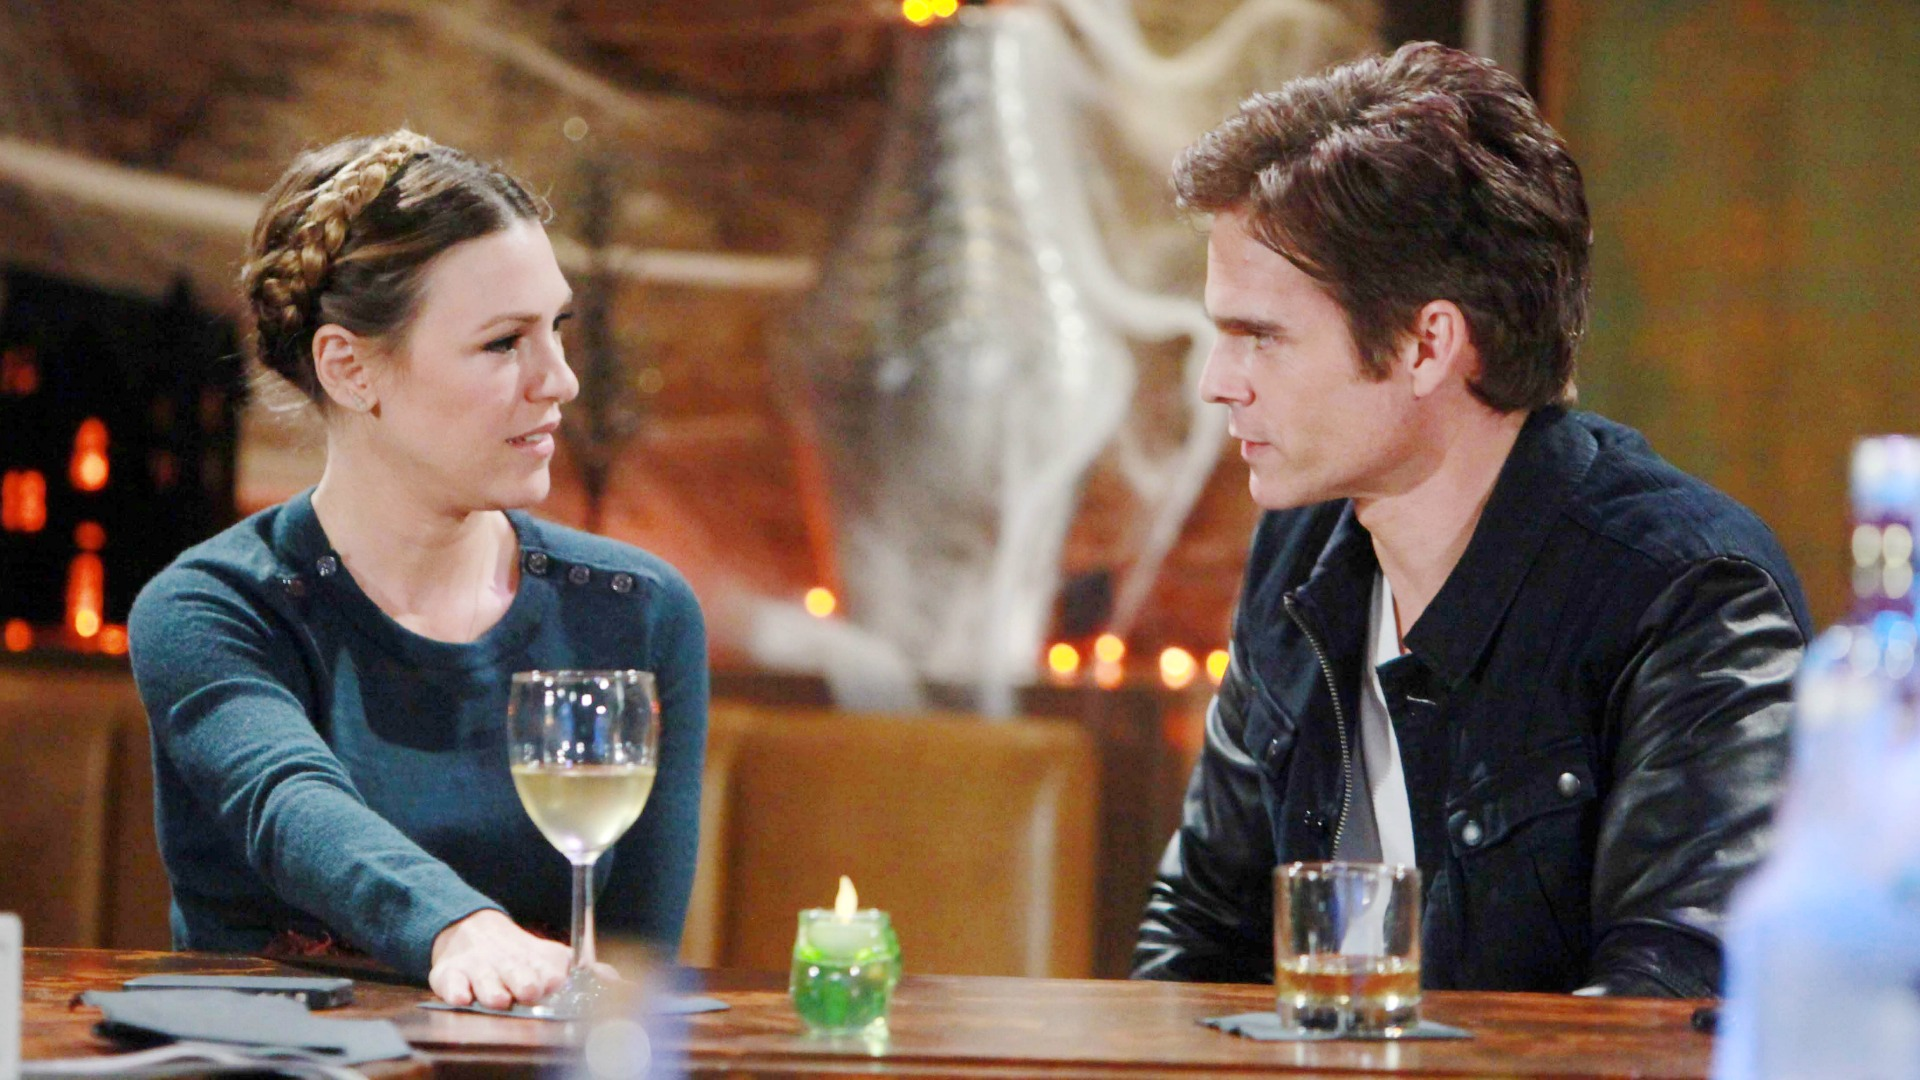 Chloe puts the breaks on her relationship with Kevin.